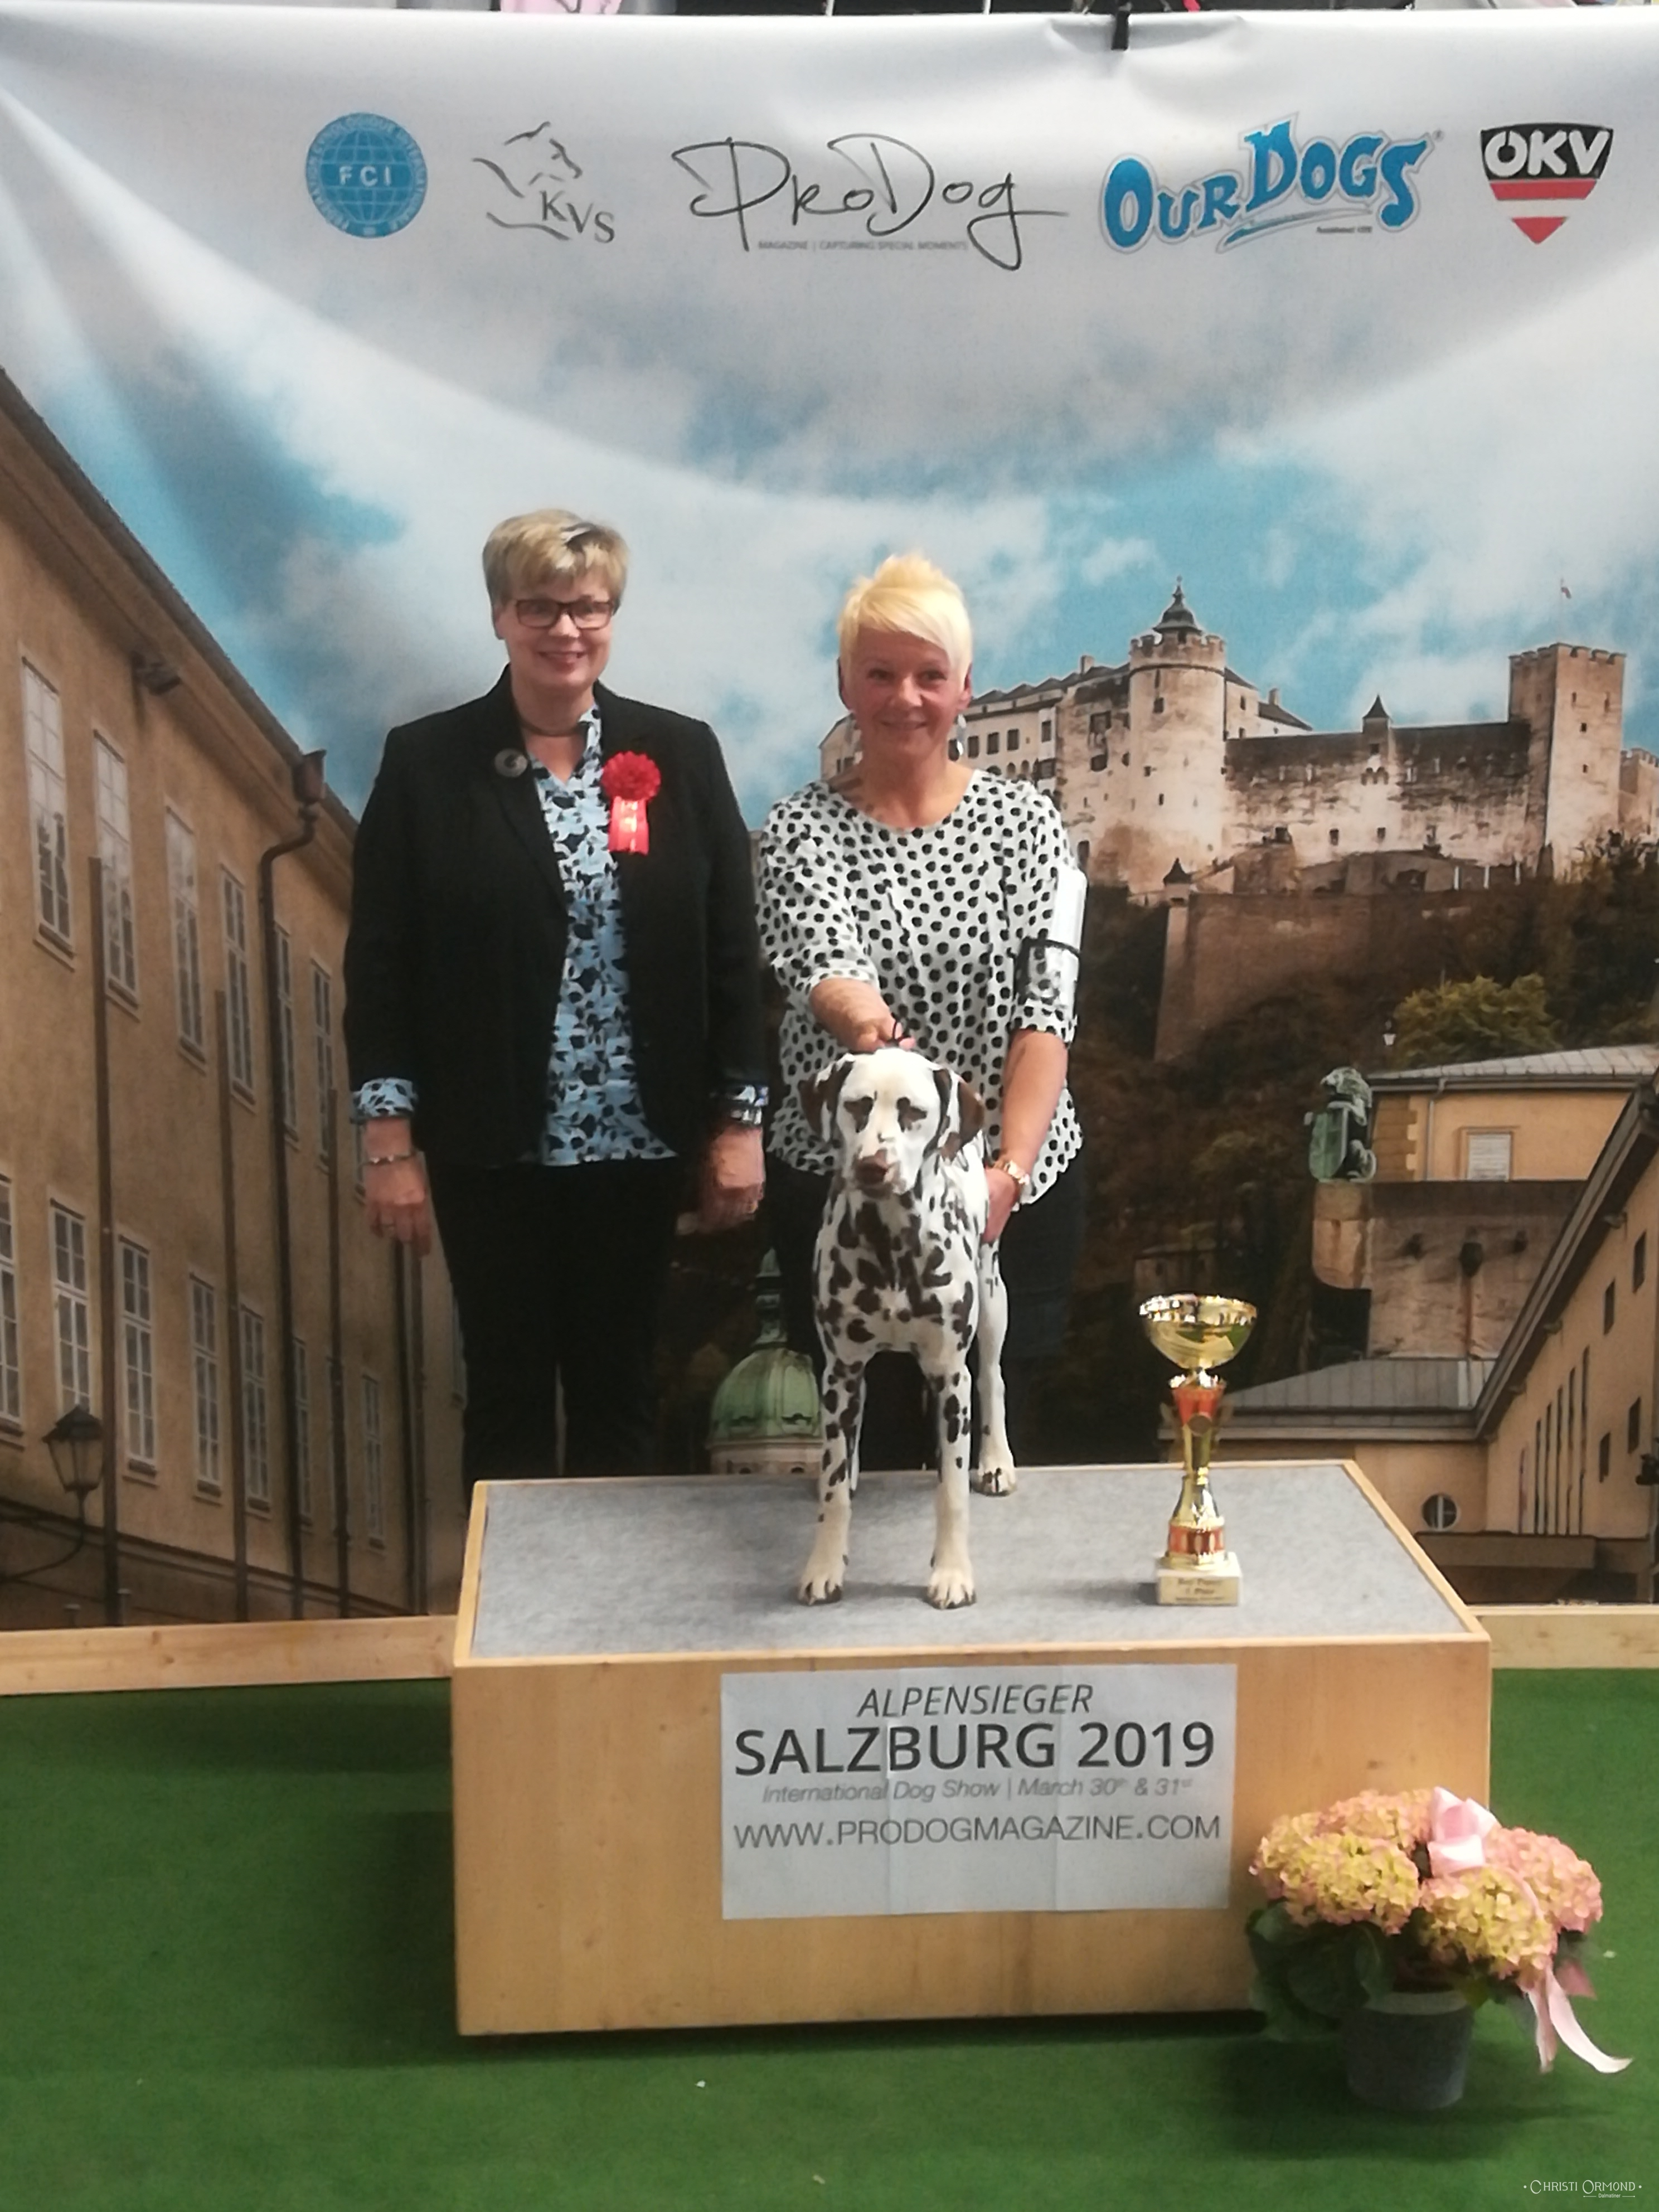 News | Christi ORMOND Dalmatians - FCI | VDH Breeding